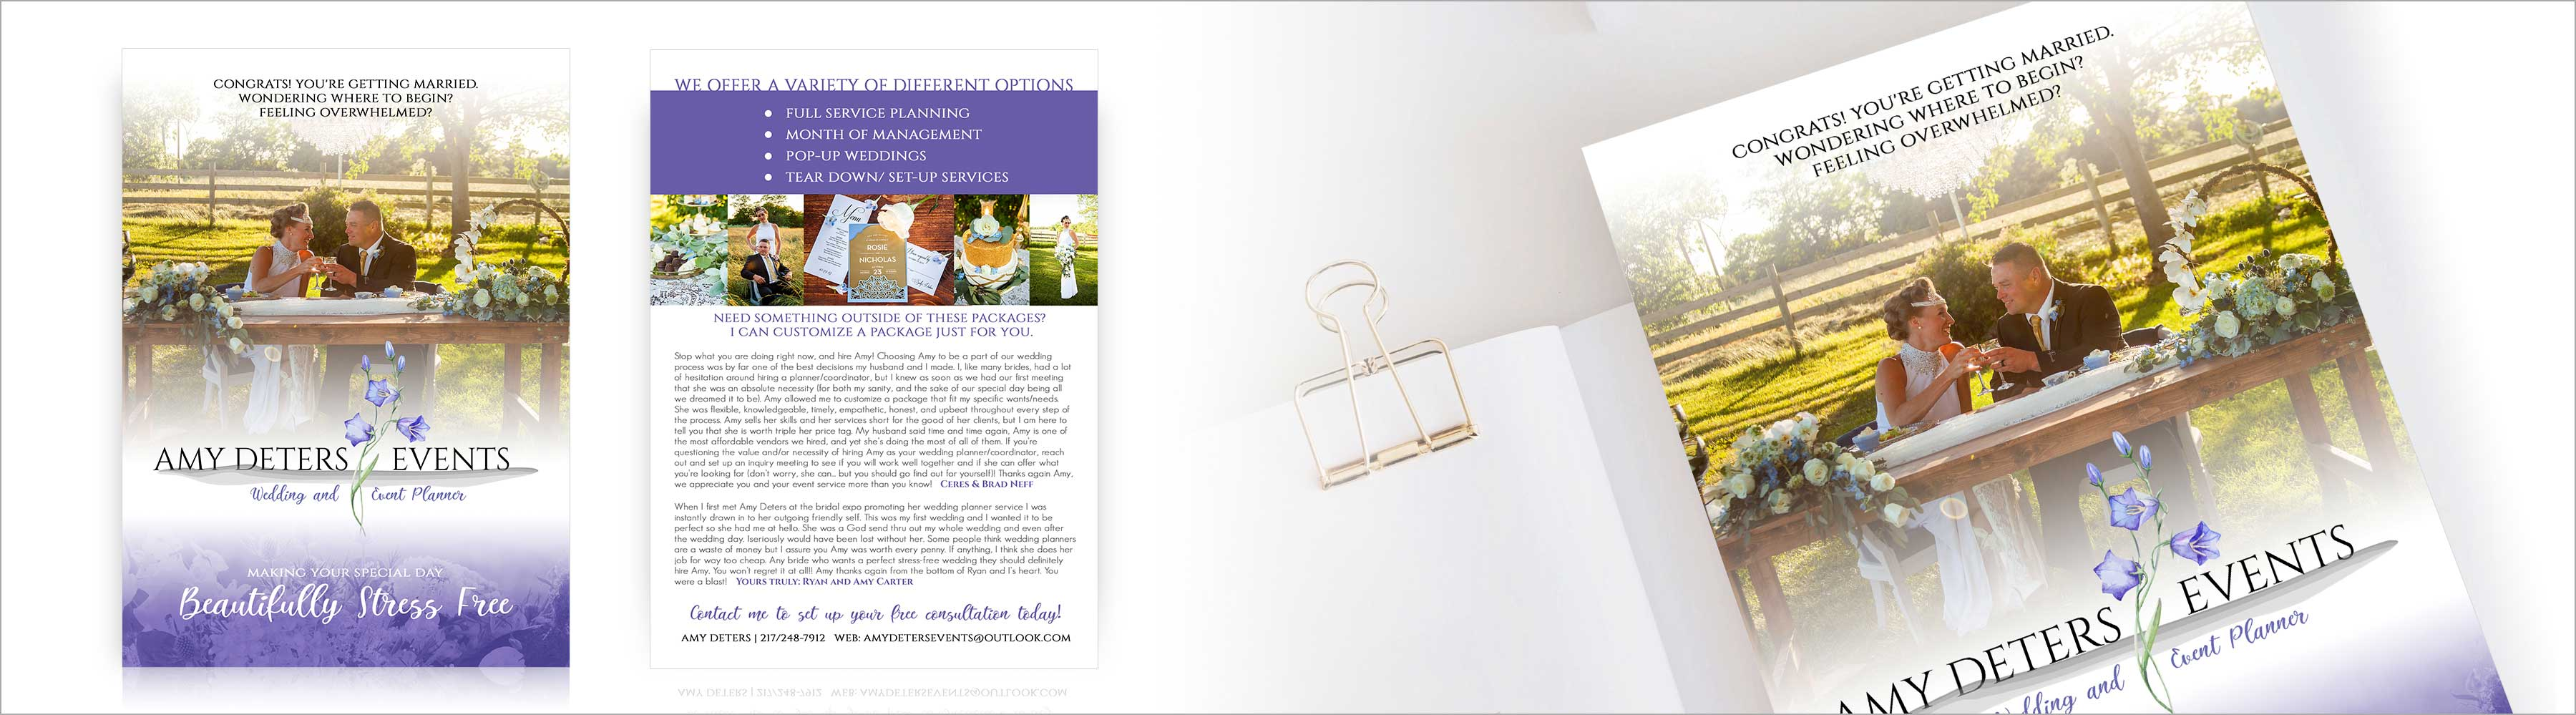 Amy Deters Events Rackcard Design